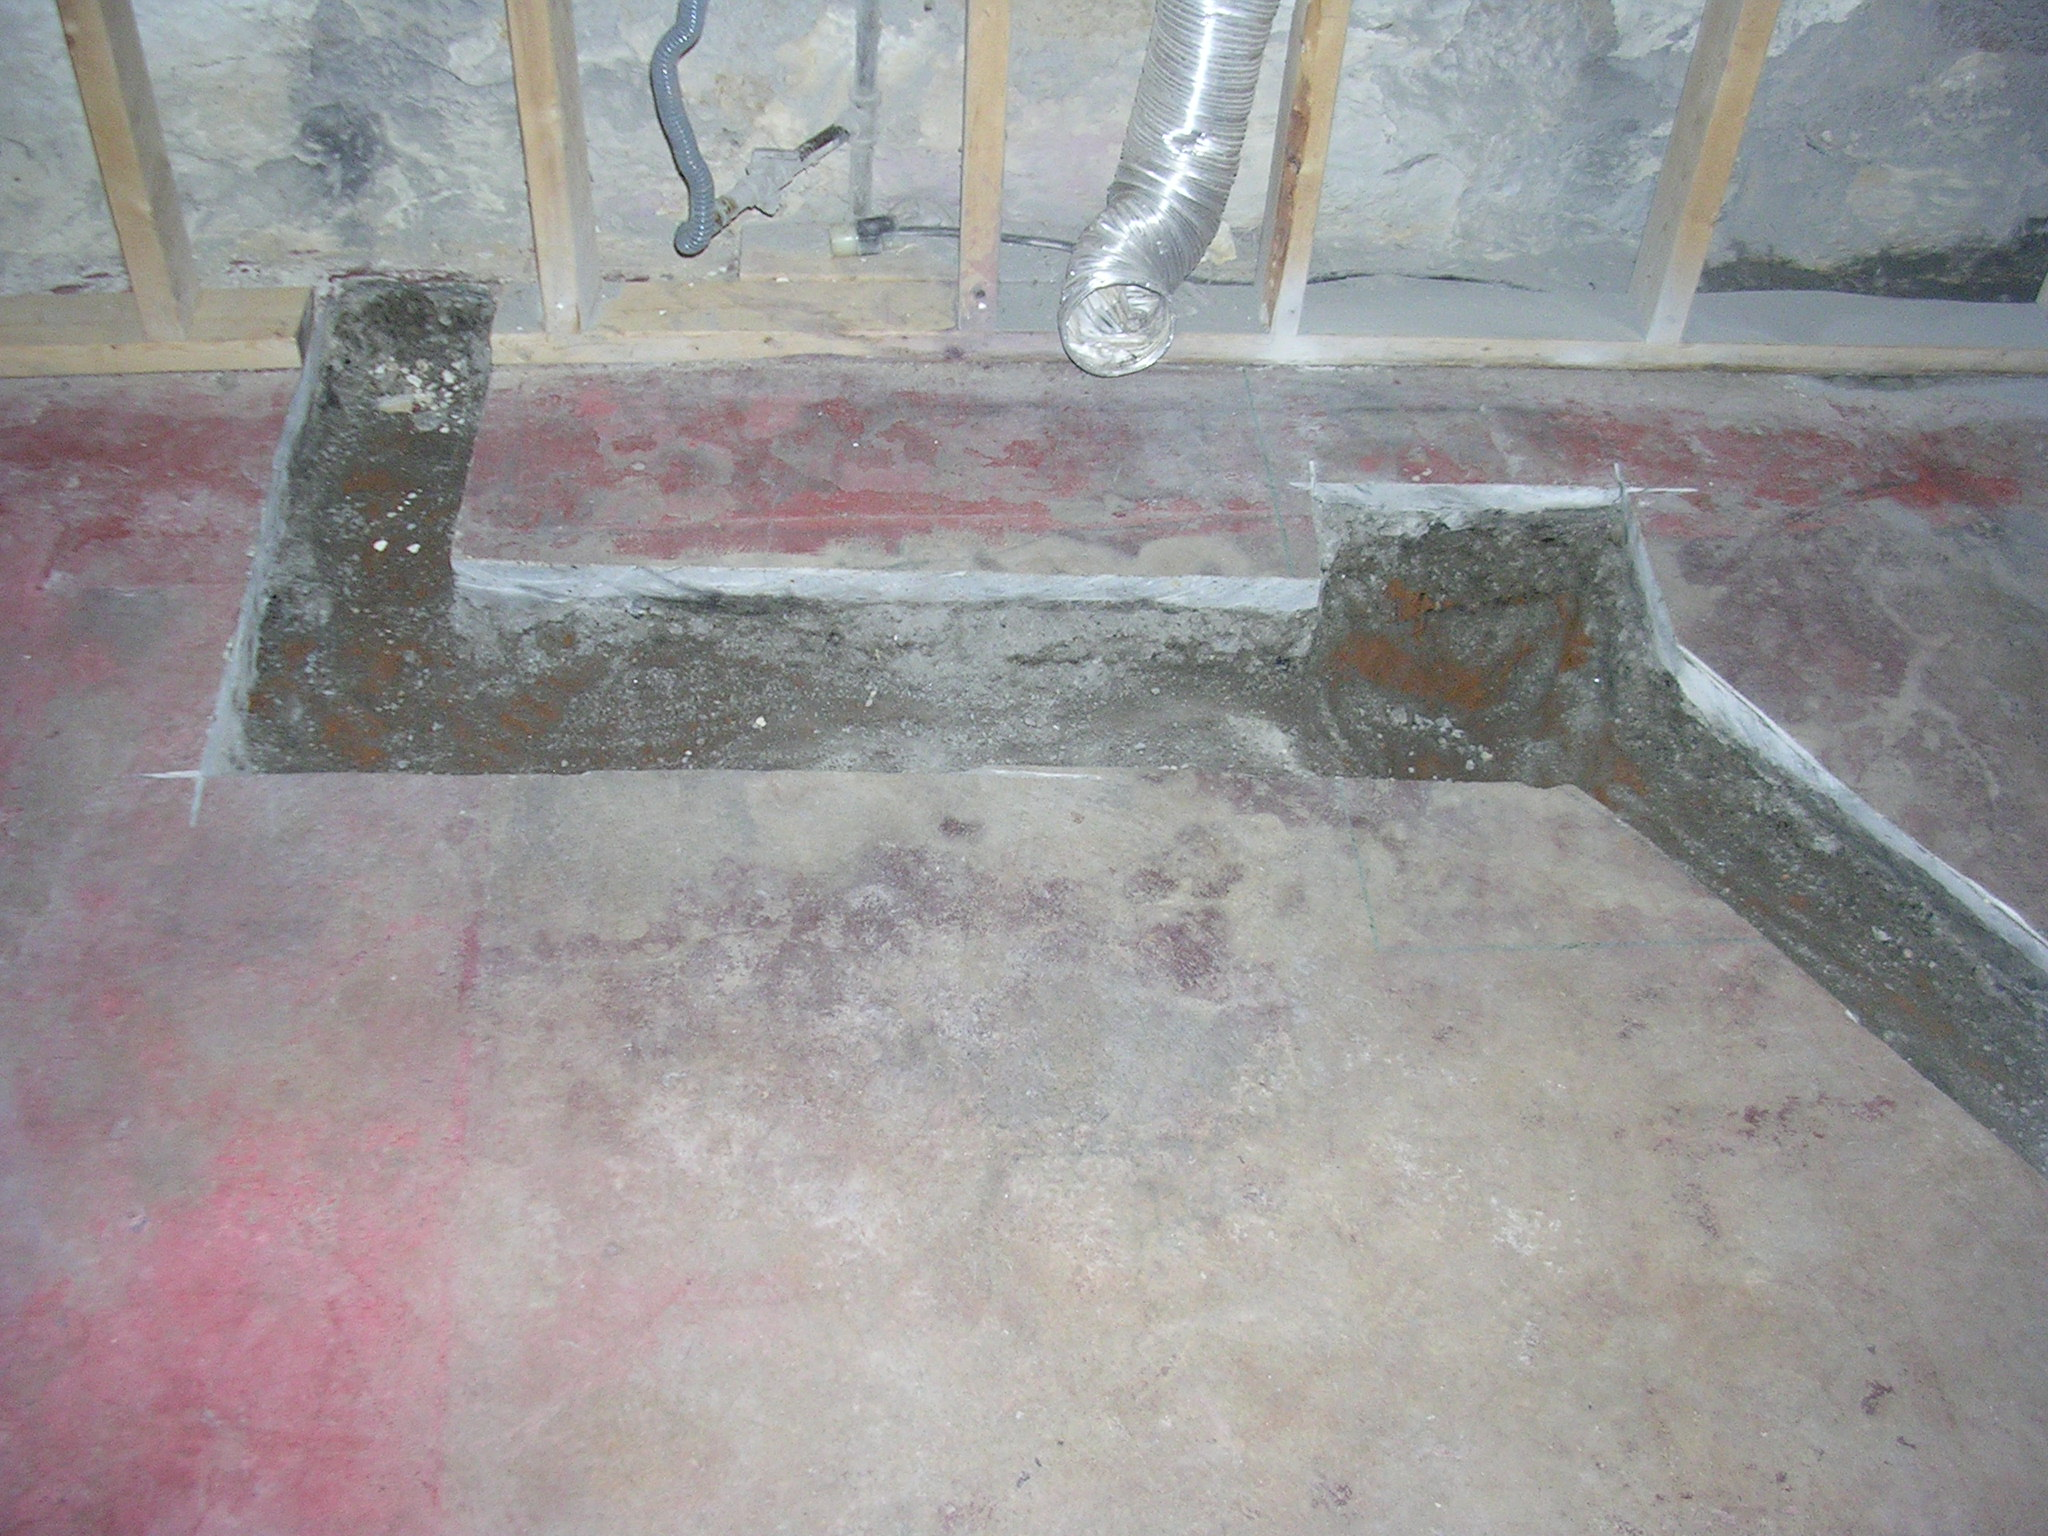 Knez 39 s home for Bathroom in basement without breaking concrete